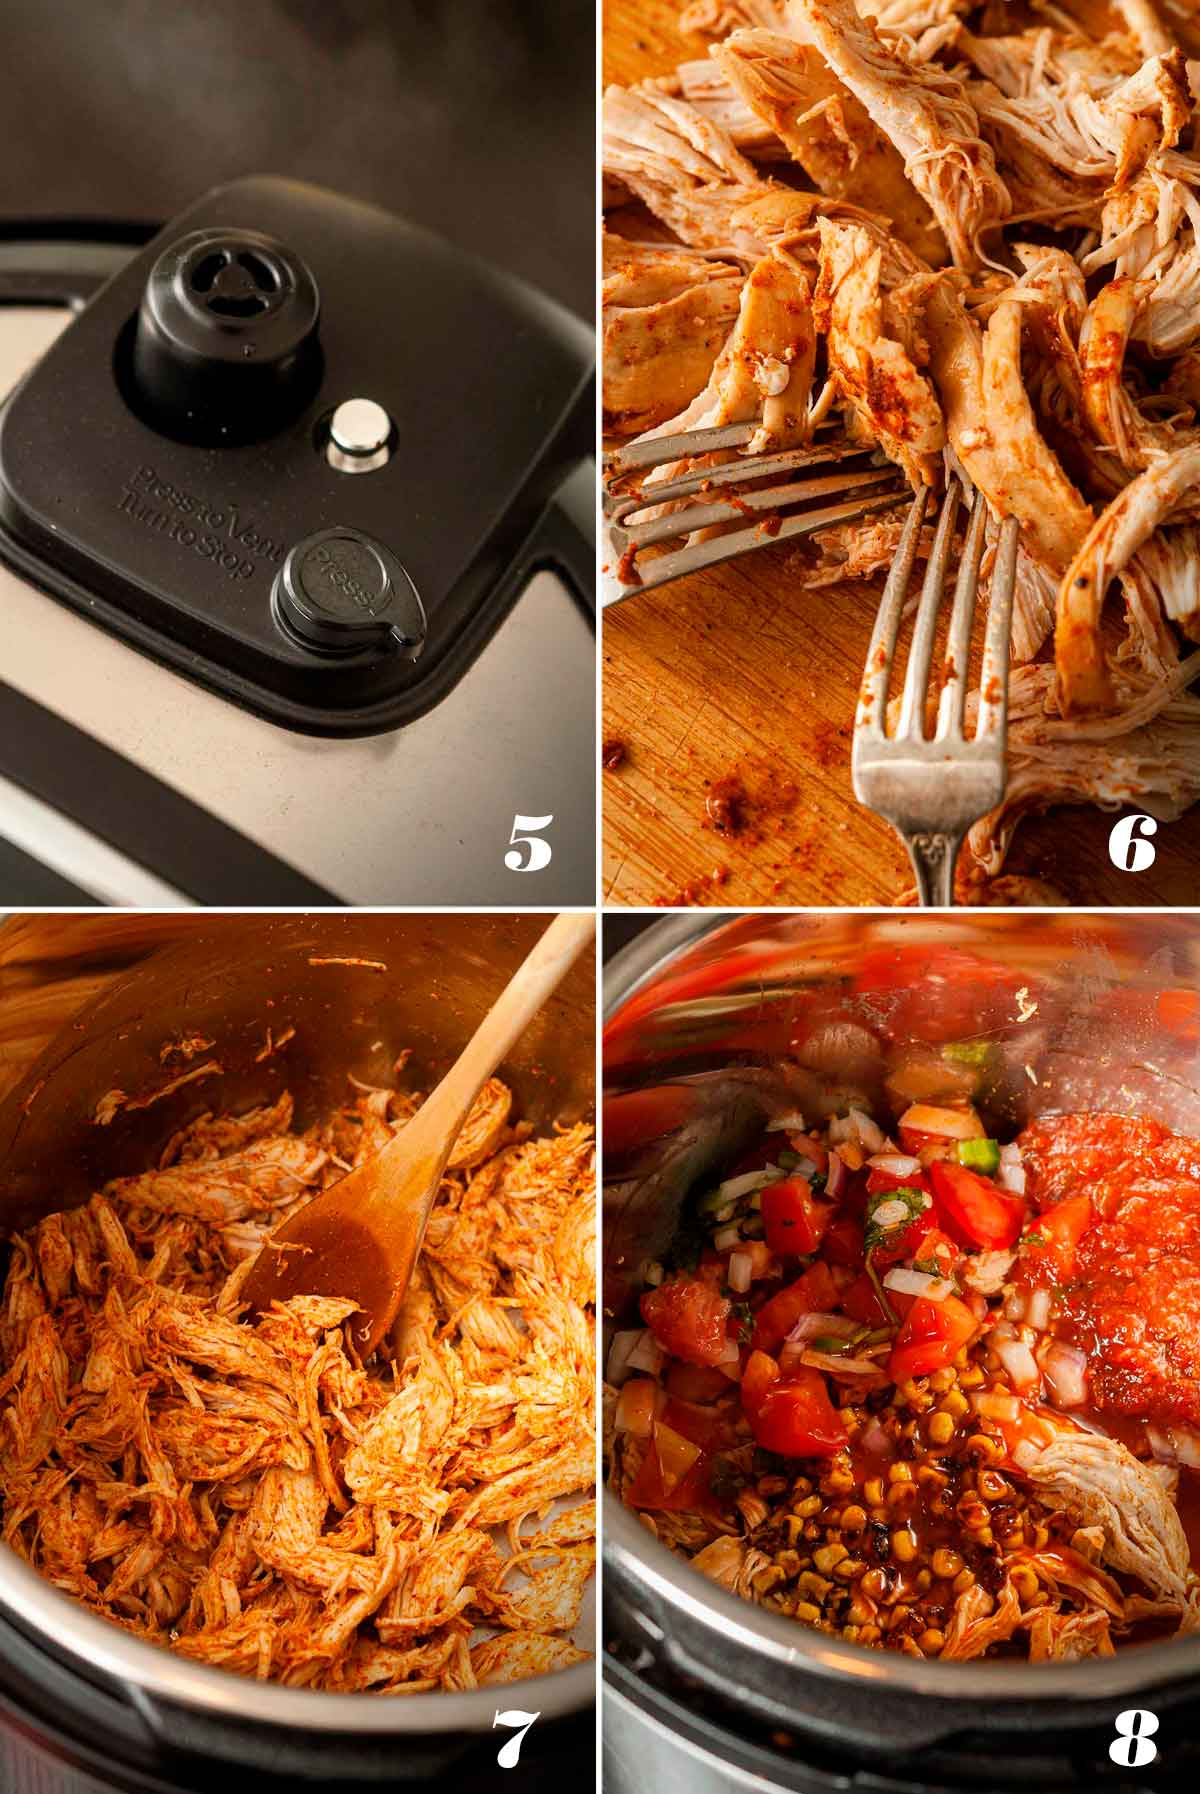 A collage of 4 numbered images showing how to make chicken enchiladas.